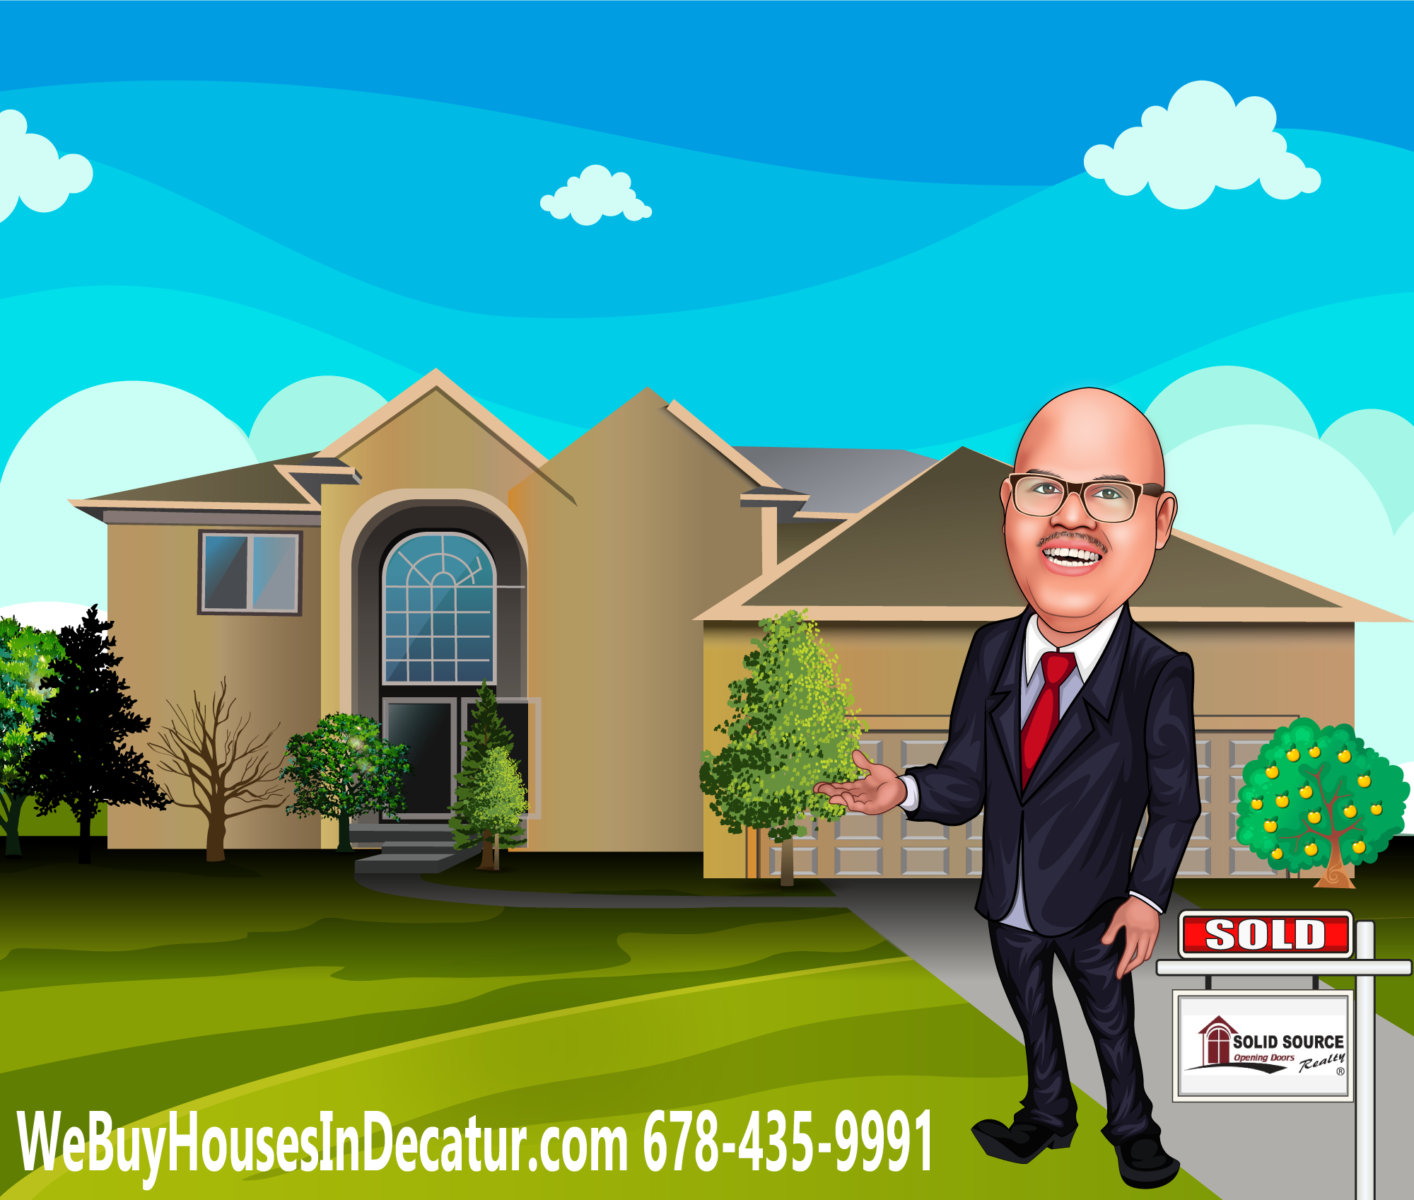 We Buy Houses in Decatur Ga logo